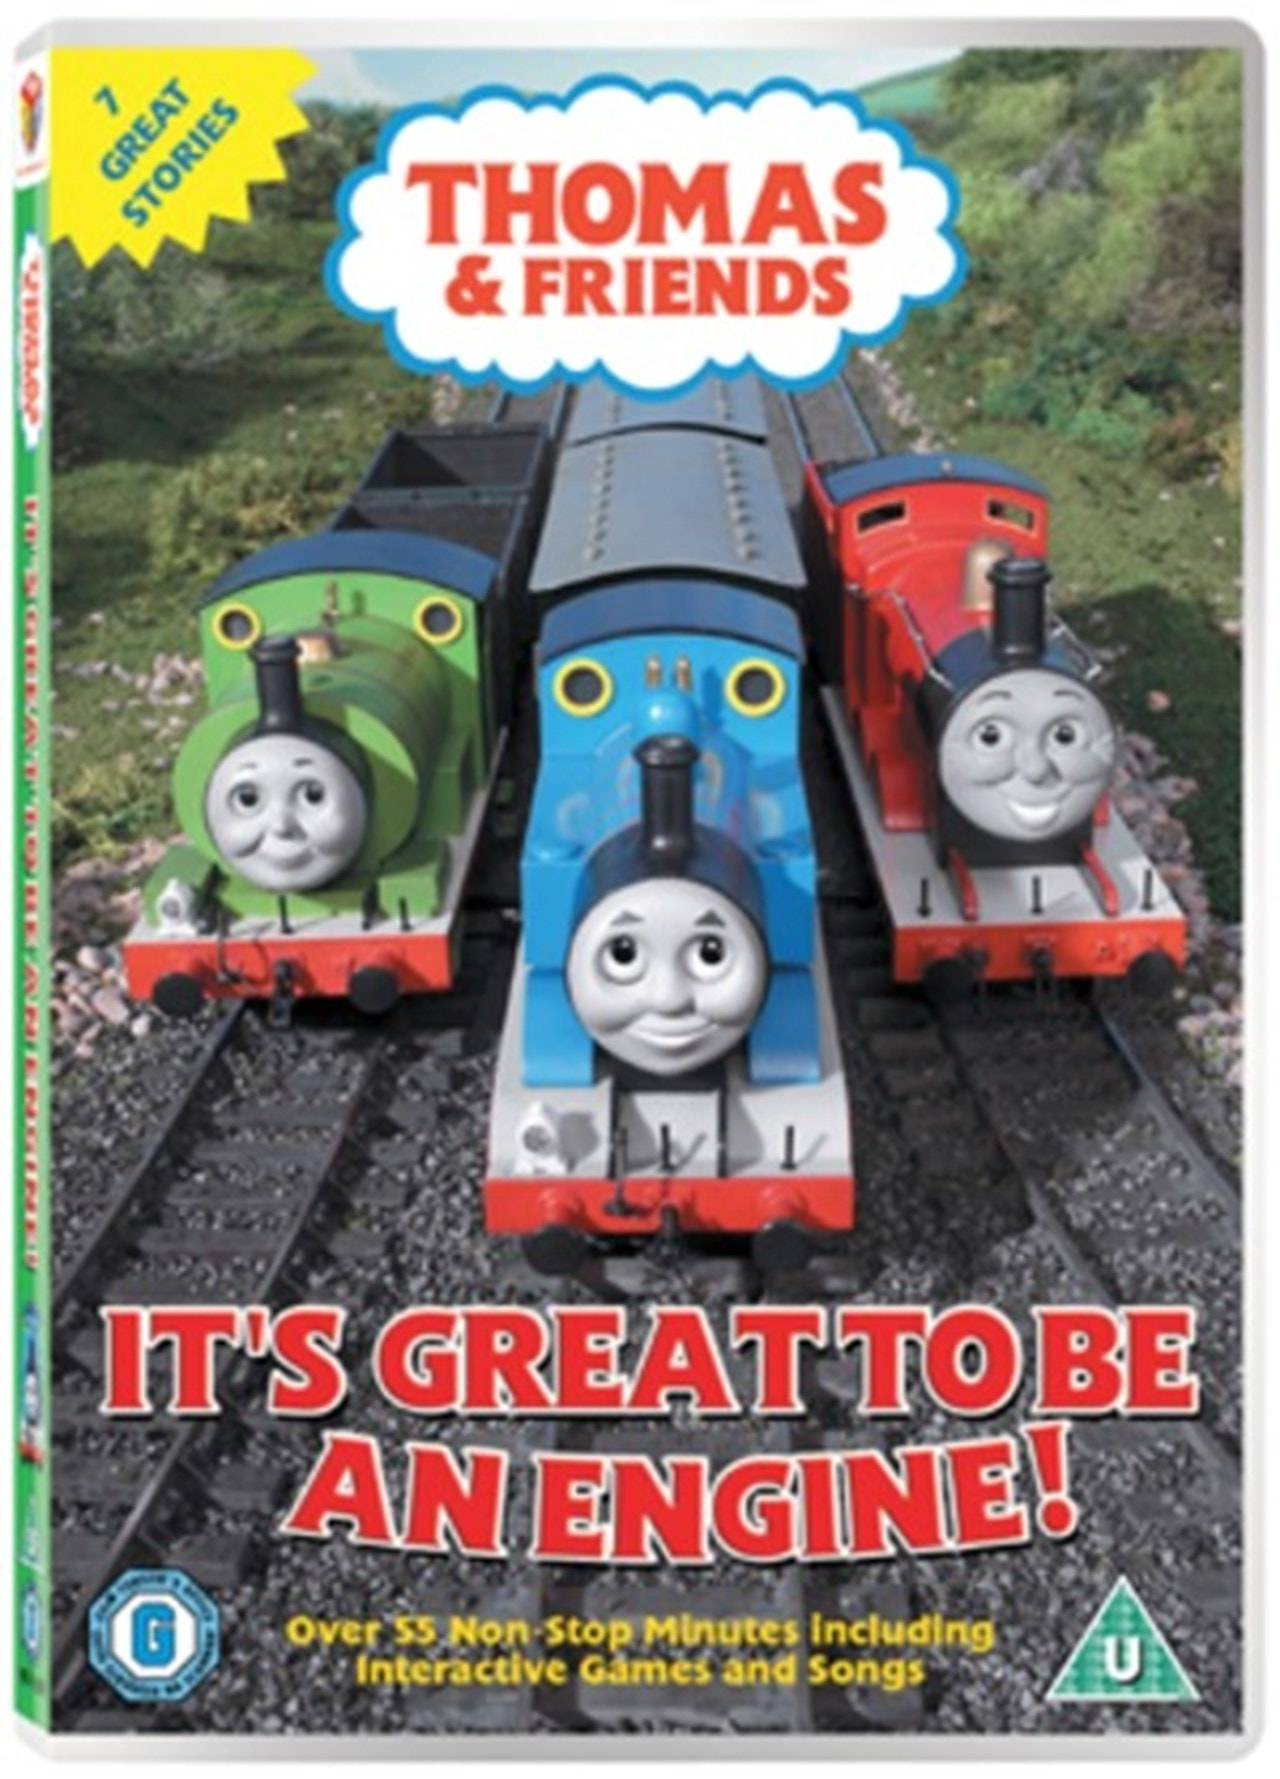 Thomas the Tank Engine and Friends: It's Great to Be an Engine! - 1